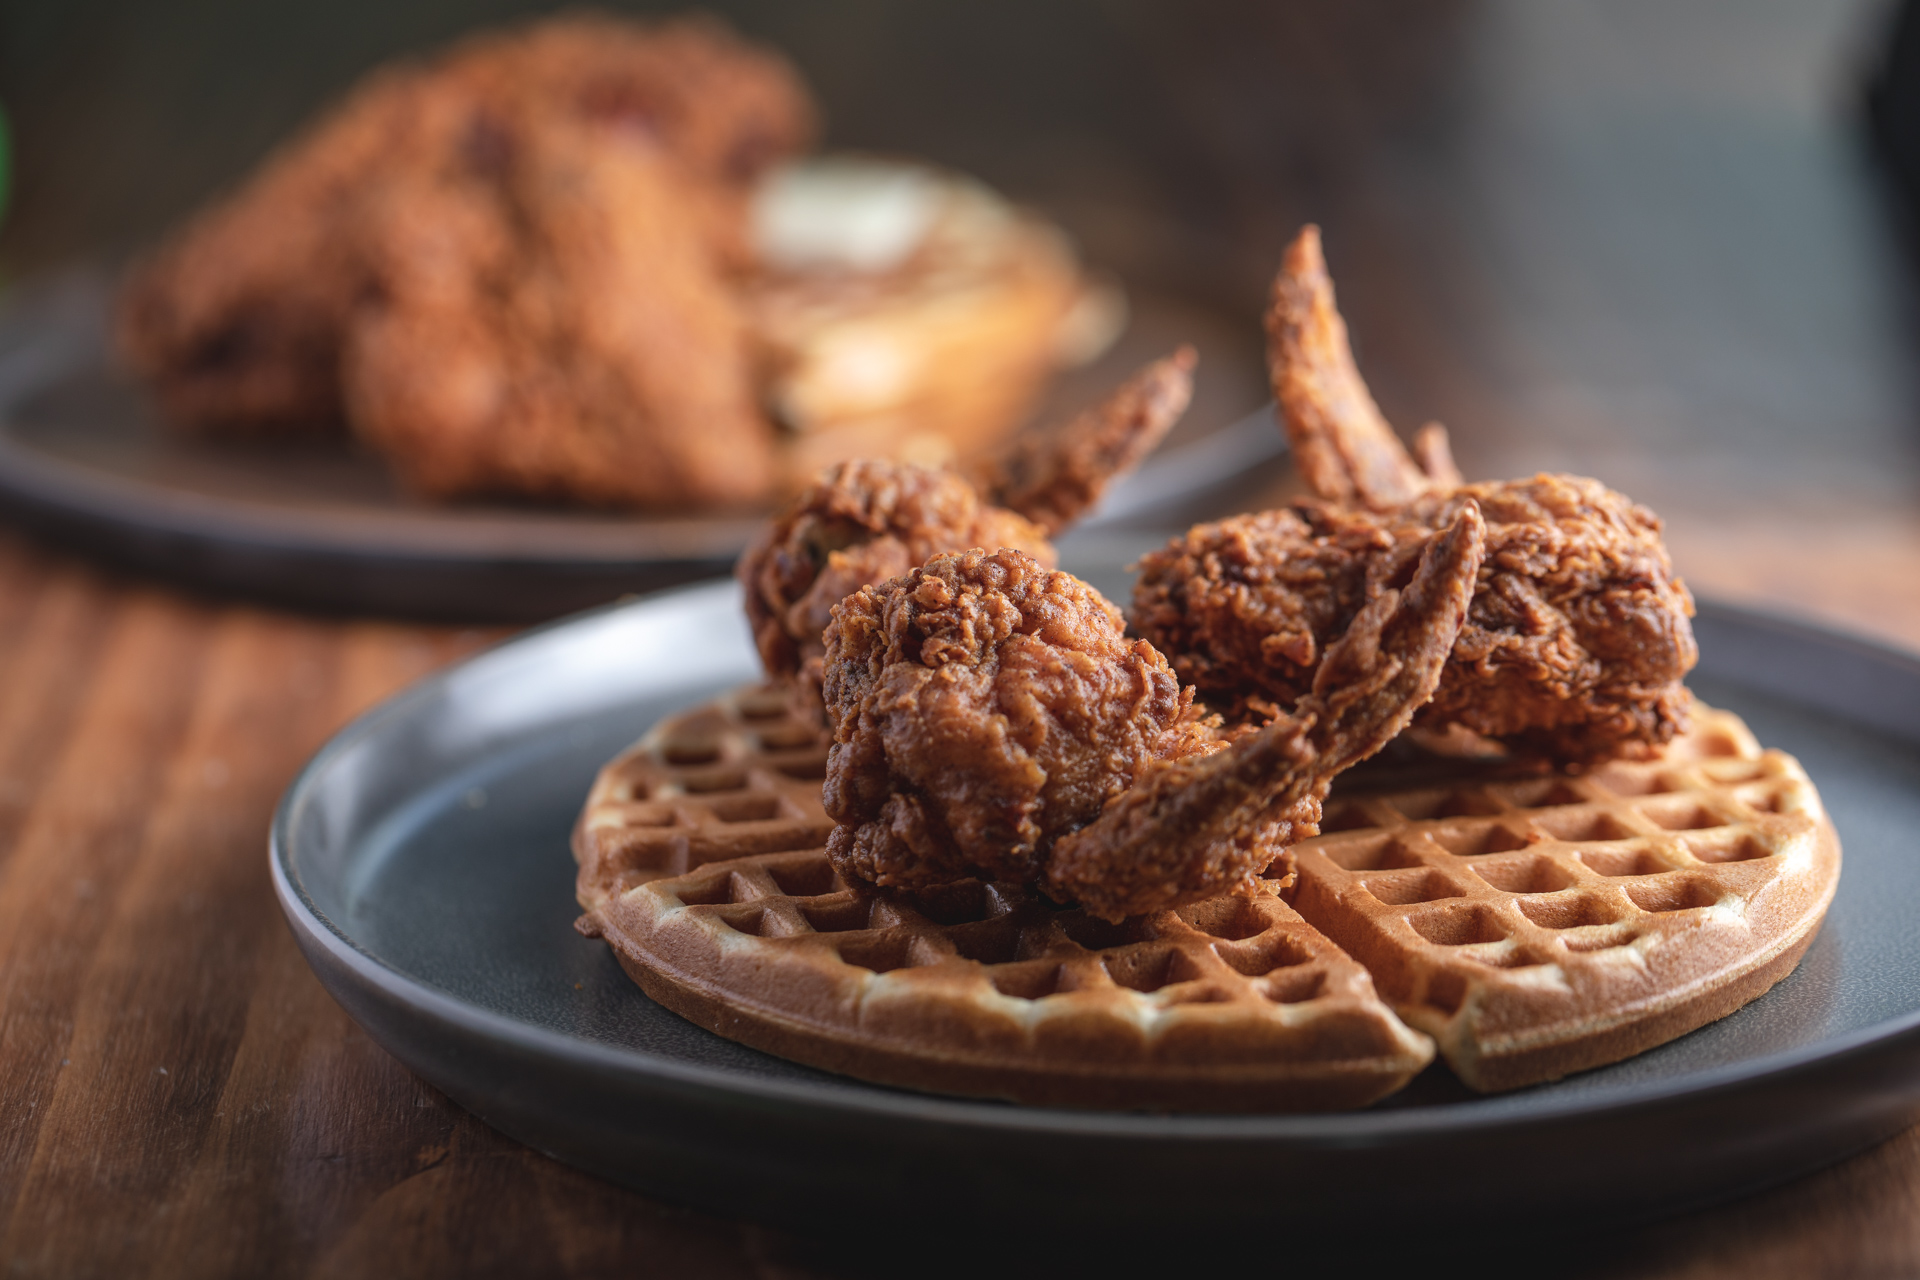 Chicken and waffles from Fixins Soul Kitchen in Downtown LA on a dark plate.